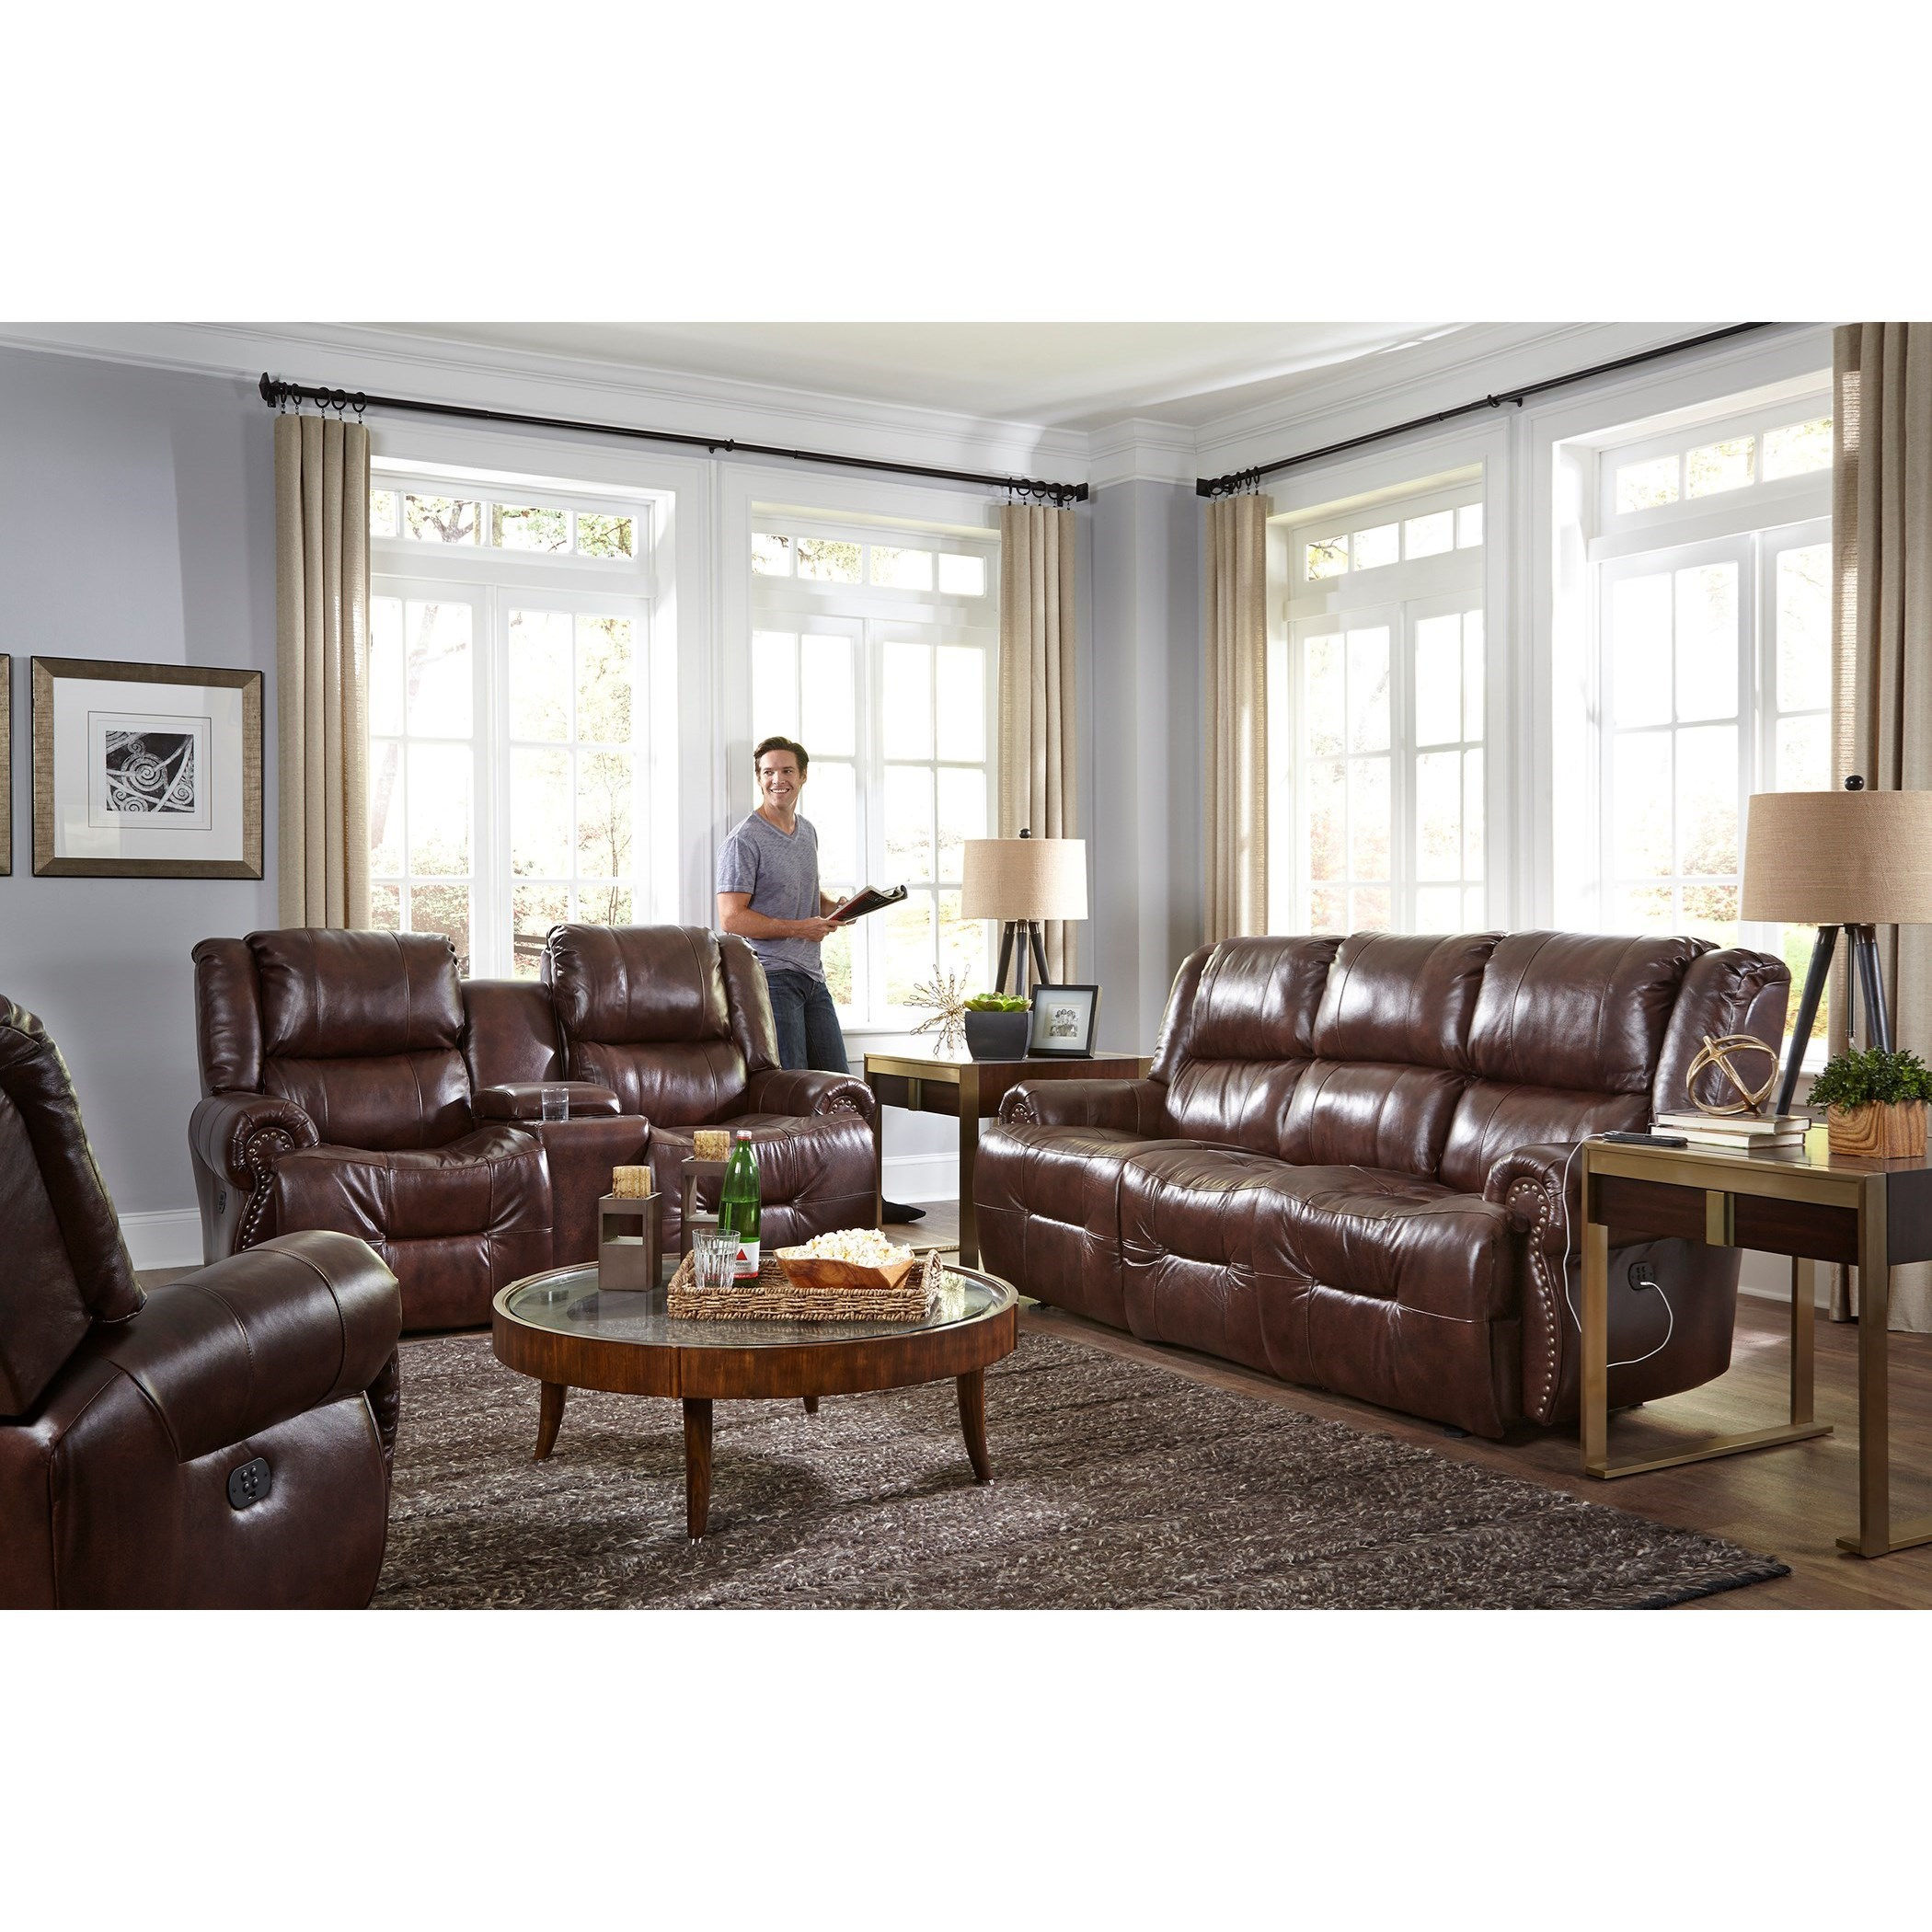 Genet Reclining Living Room Group by Best Home Furnishings at Baer's Furniture